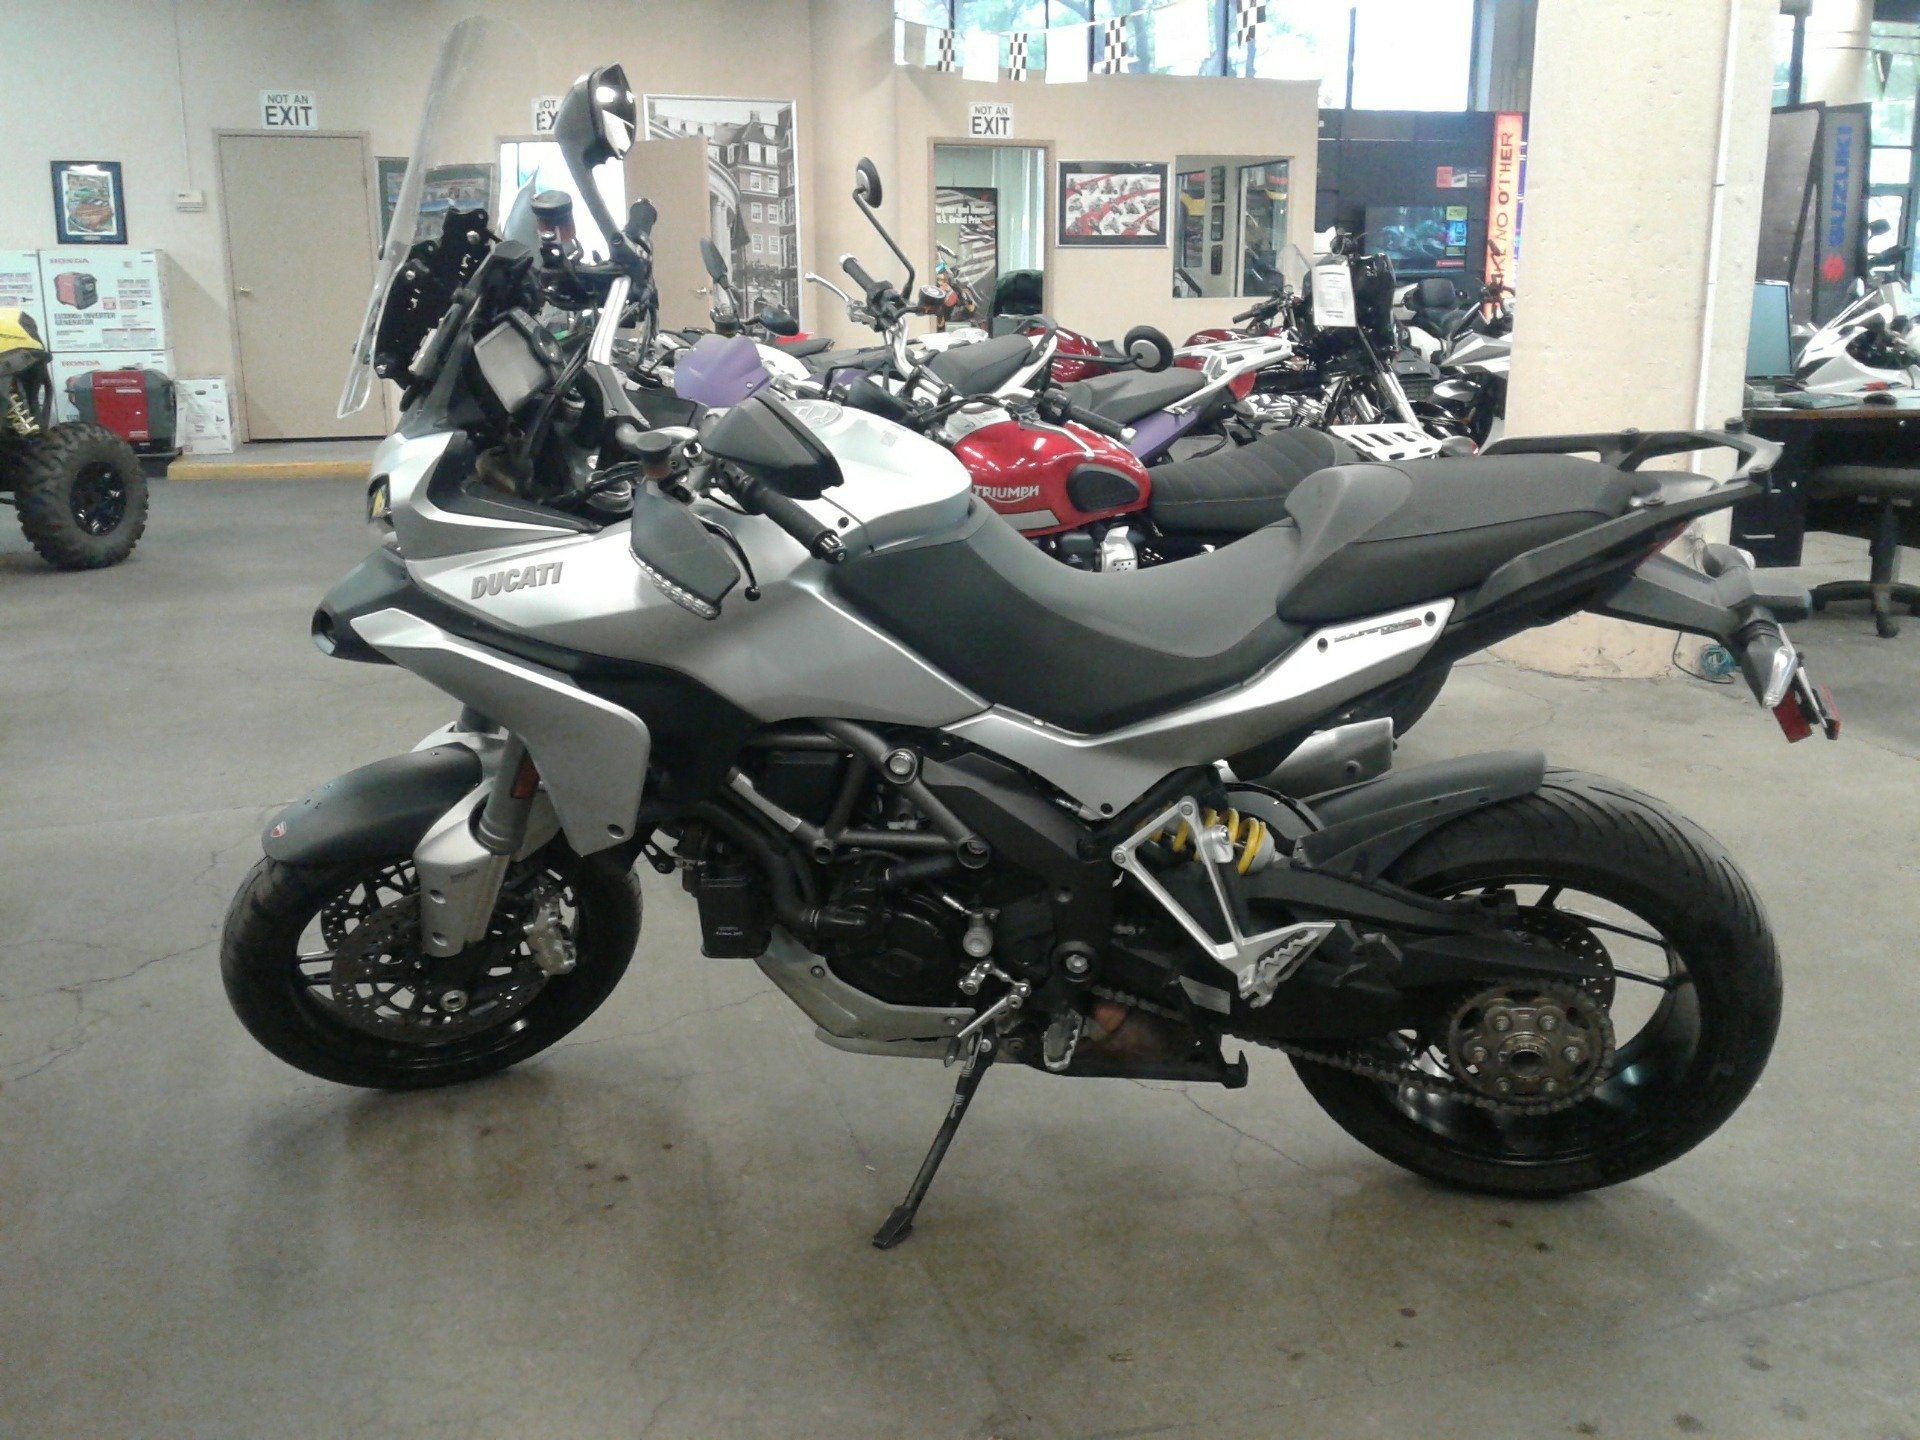 2014 Ducati Multistrada 1200 S Touring in Bakersfield, California - Photo 2